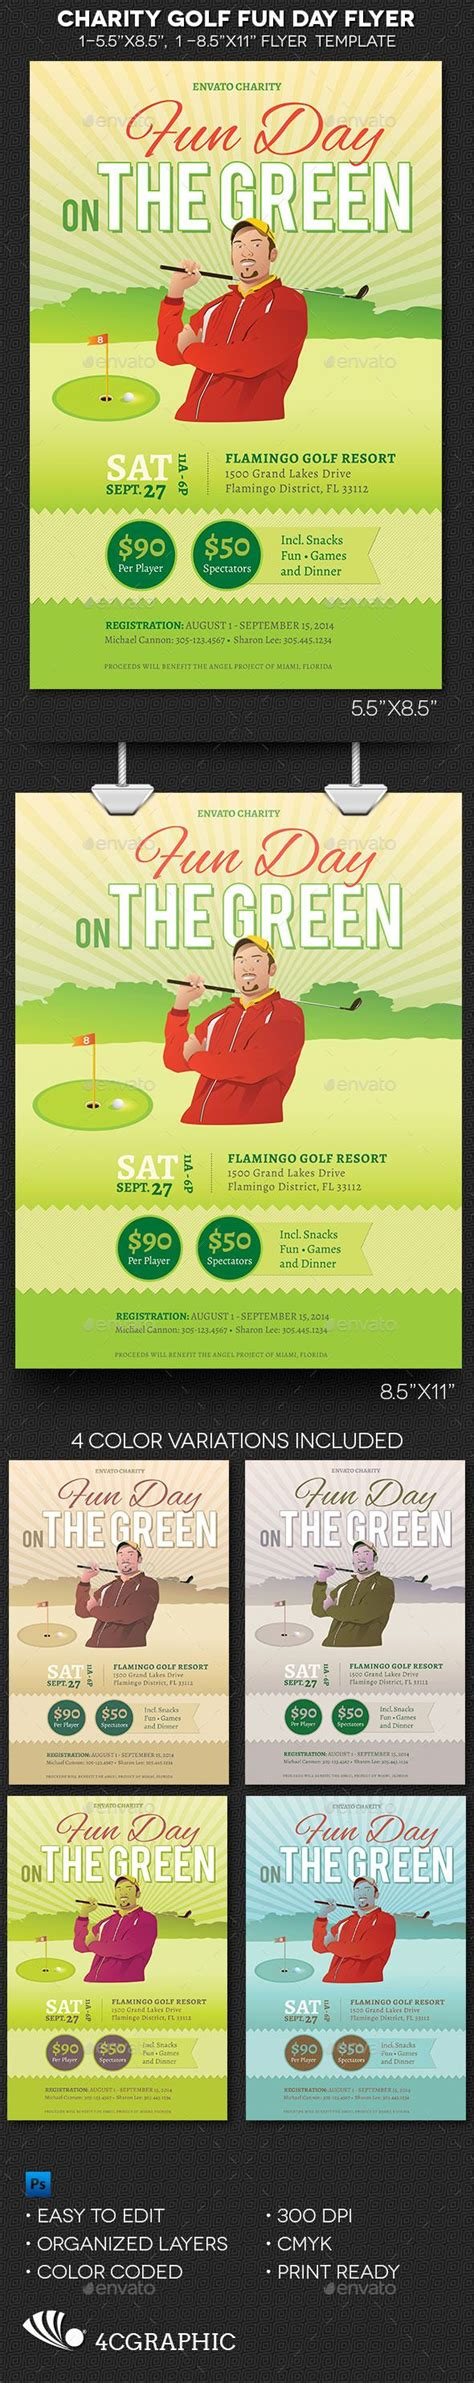 sport balls sale poster template in microsoft word